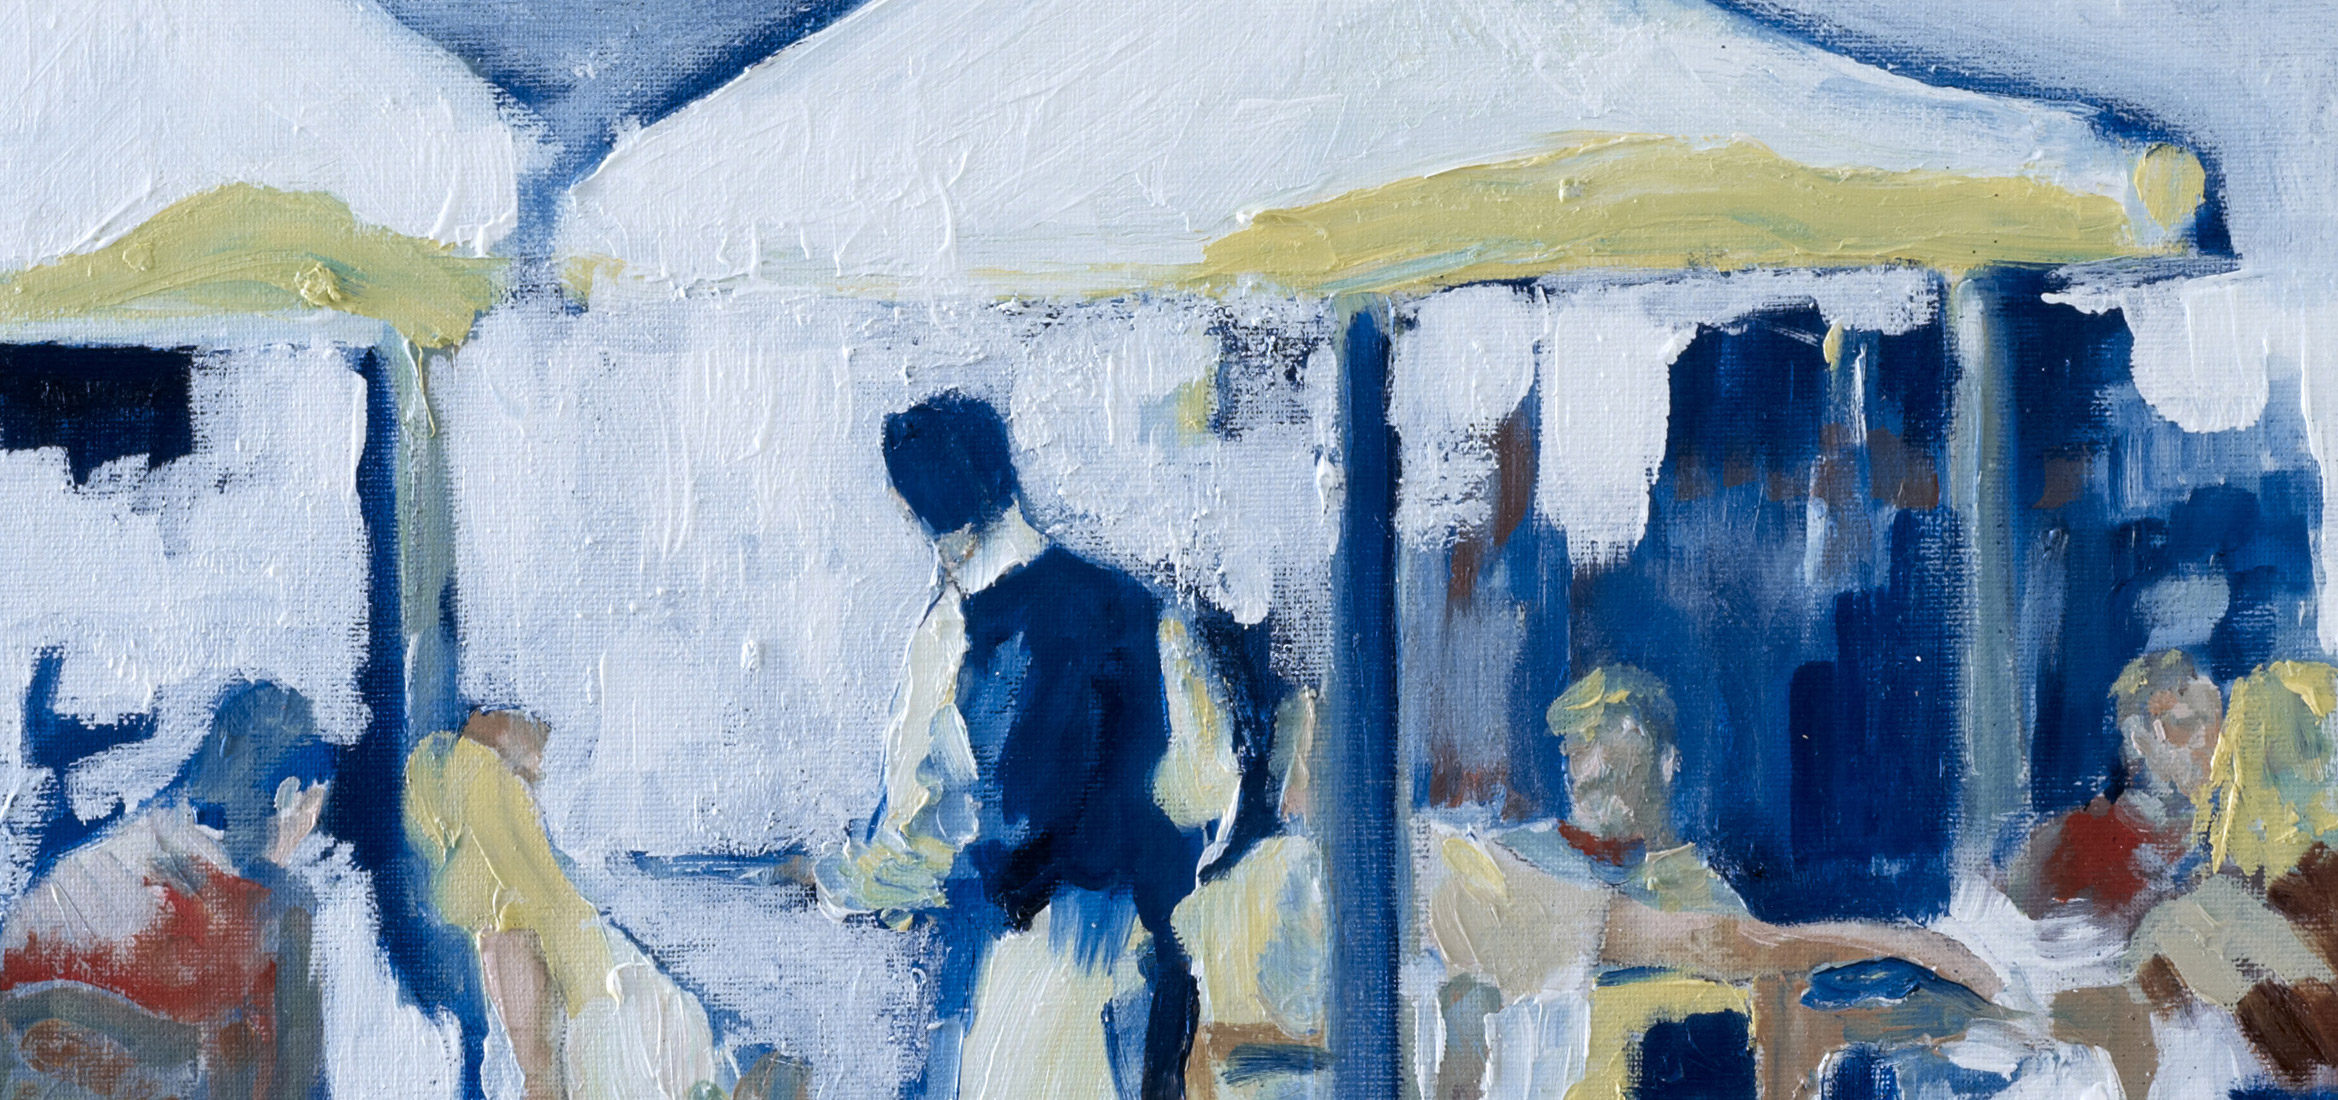 """""""To own an original piece of artwork from any artist is a delight. To own one painted by Gower is a rare privilege…"""""""